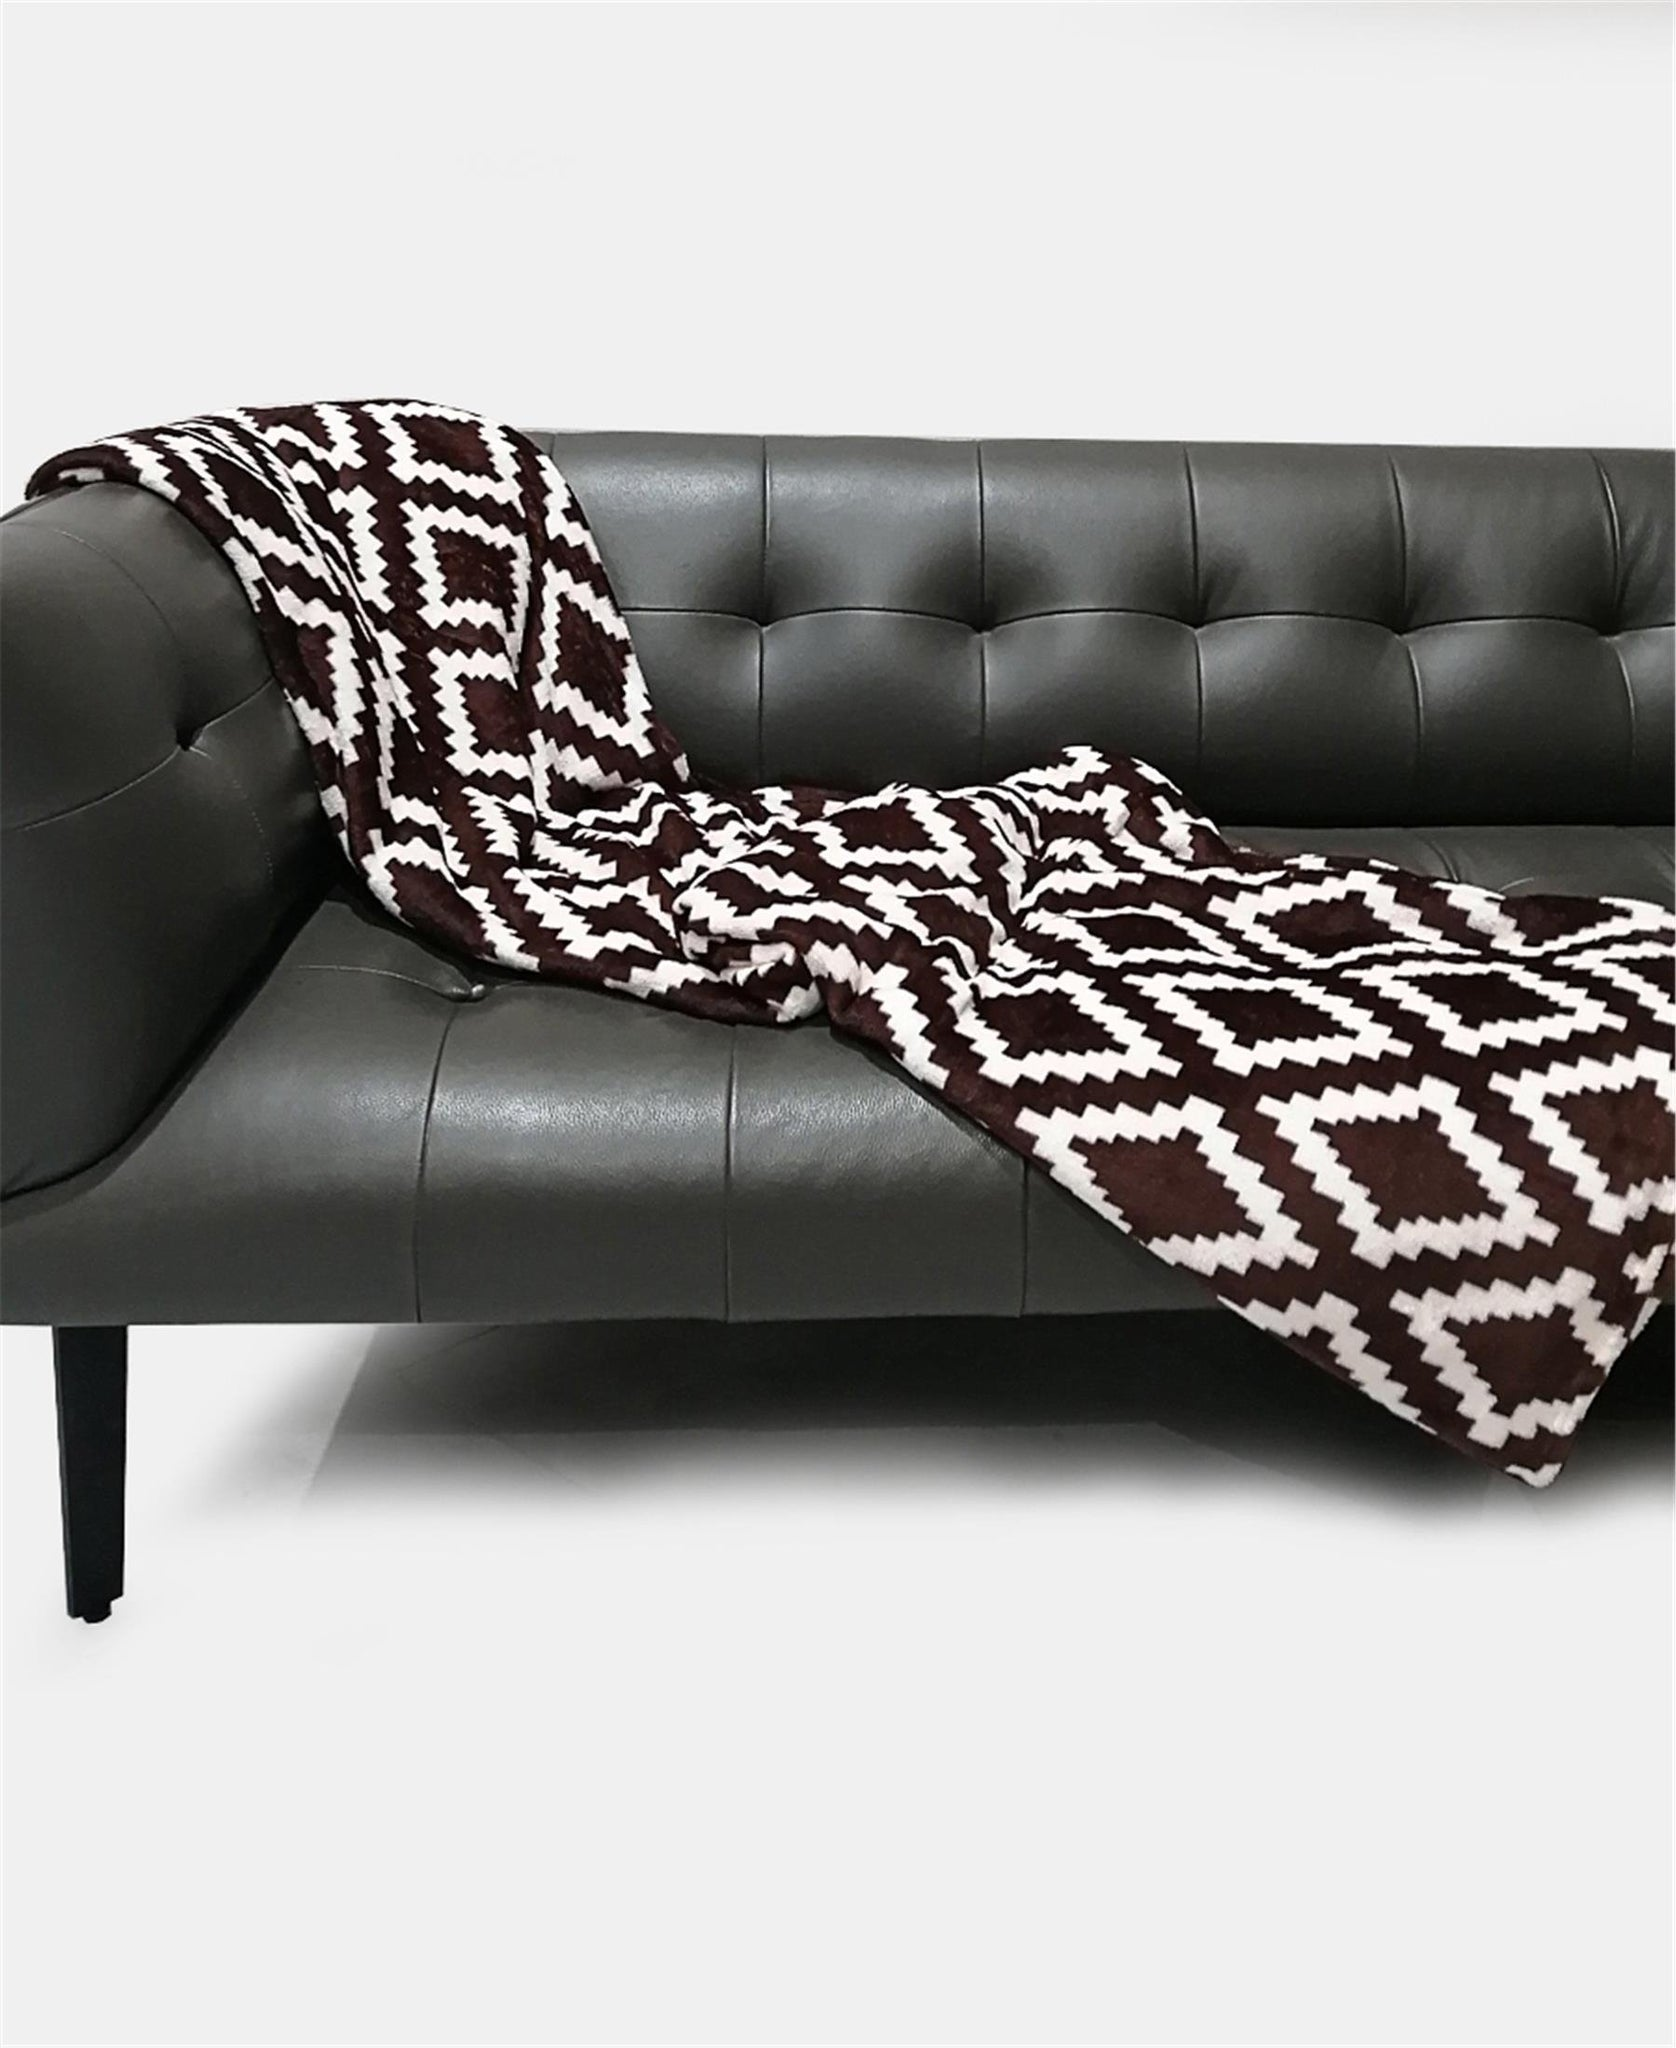 200X230cm Flannel Throw - Brown